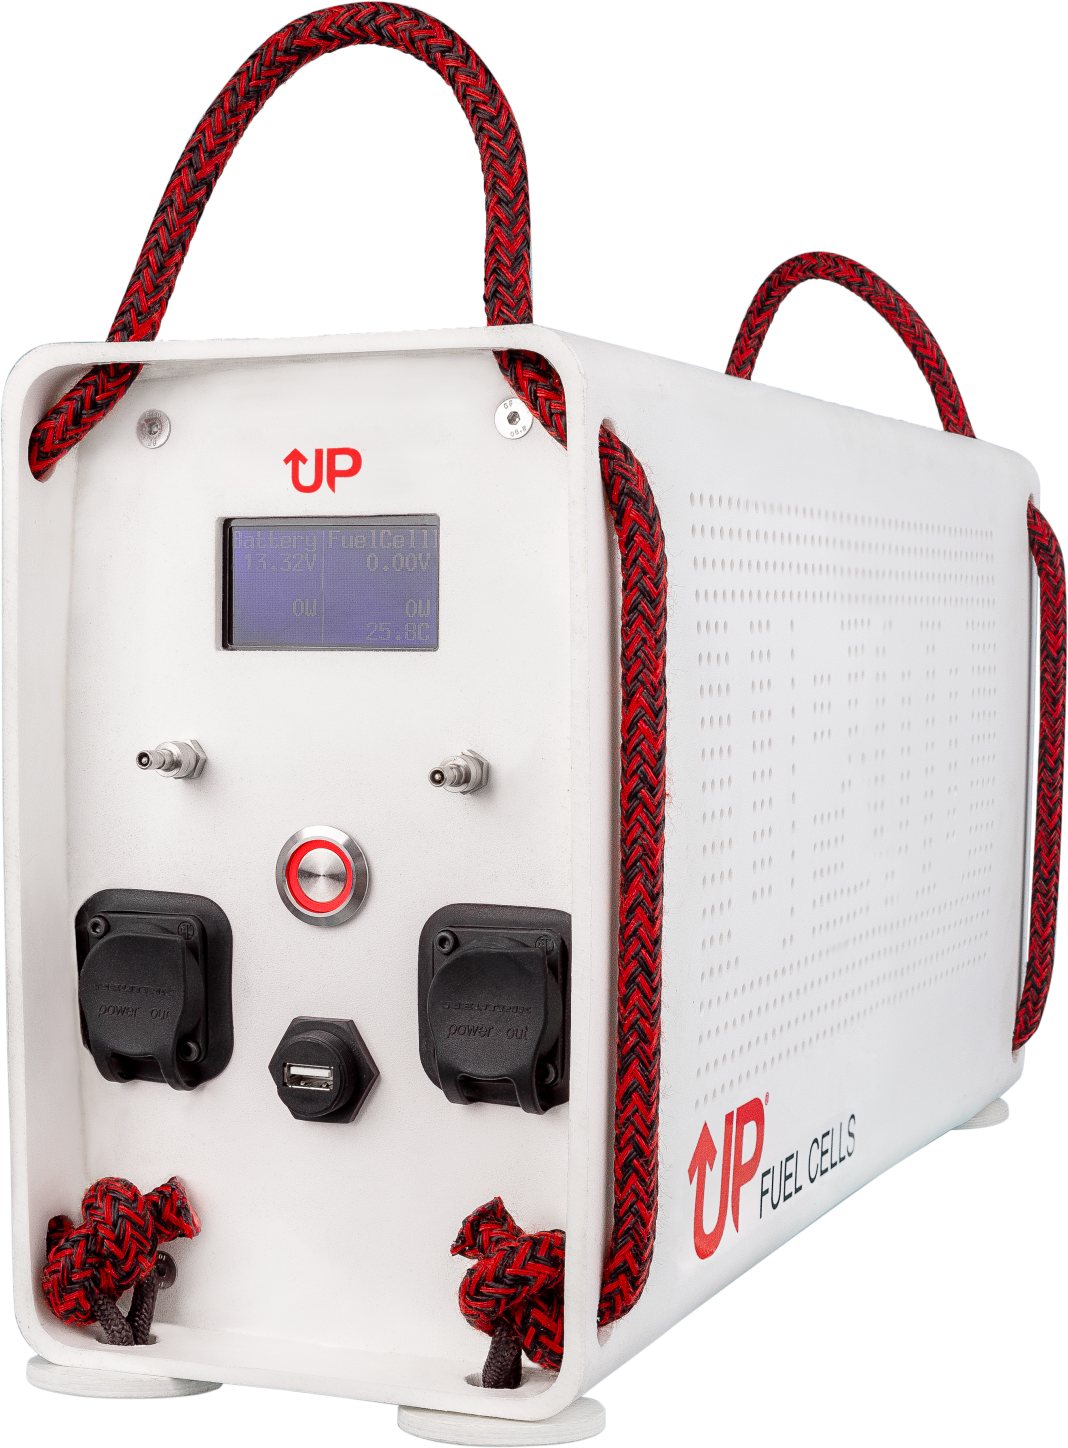 UP400 The most compact portable FC-SMARTGEN system in the world